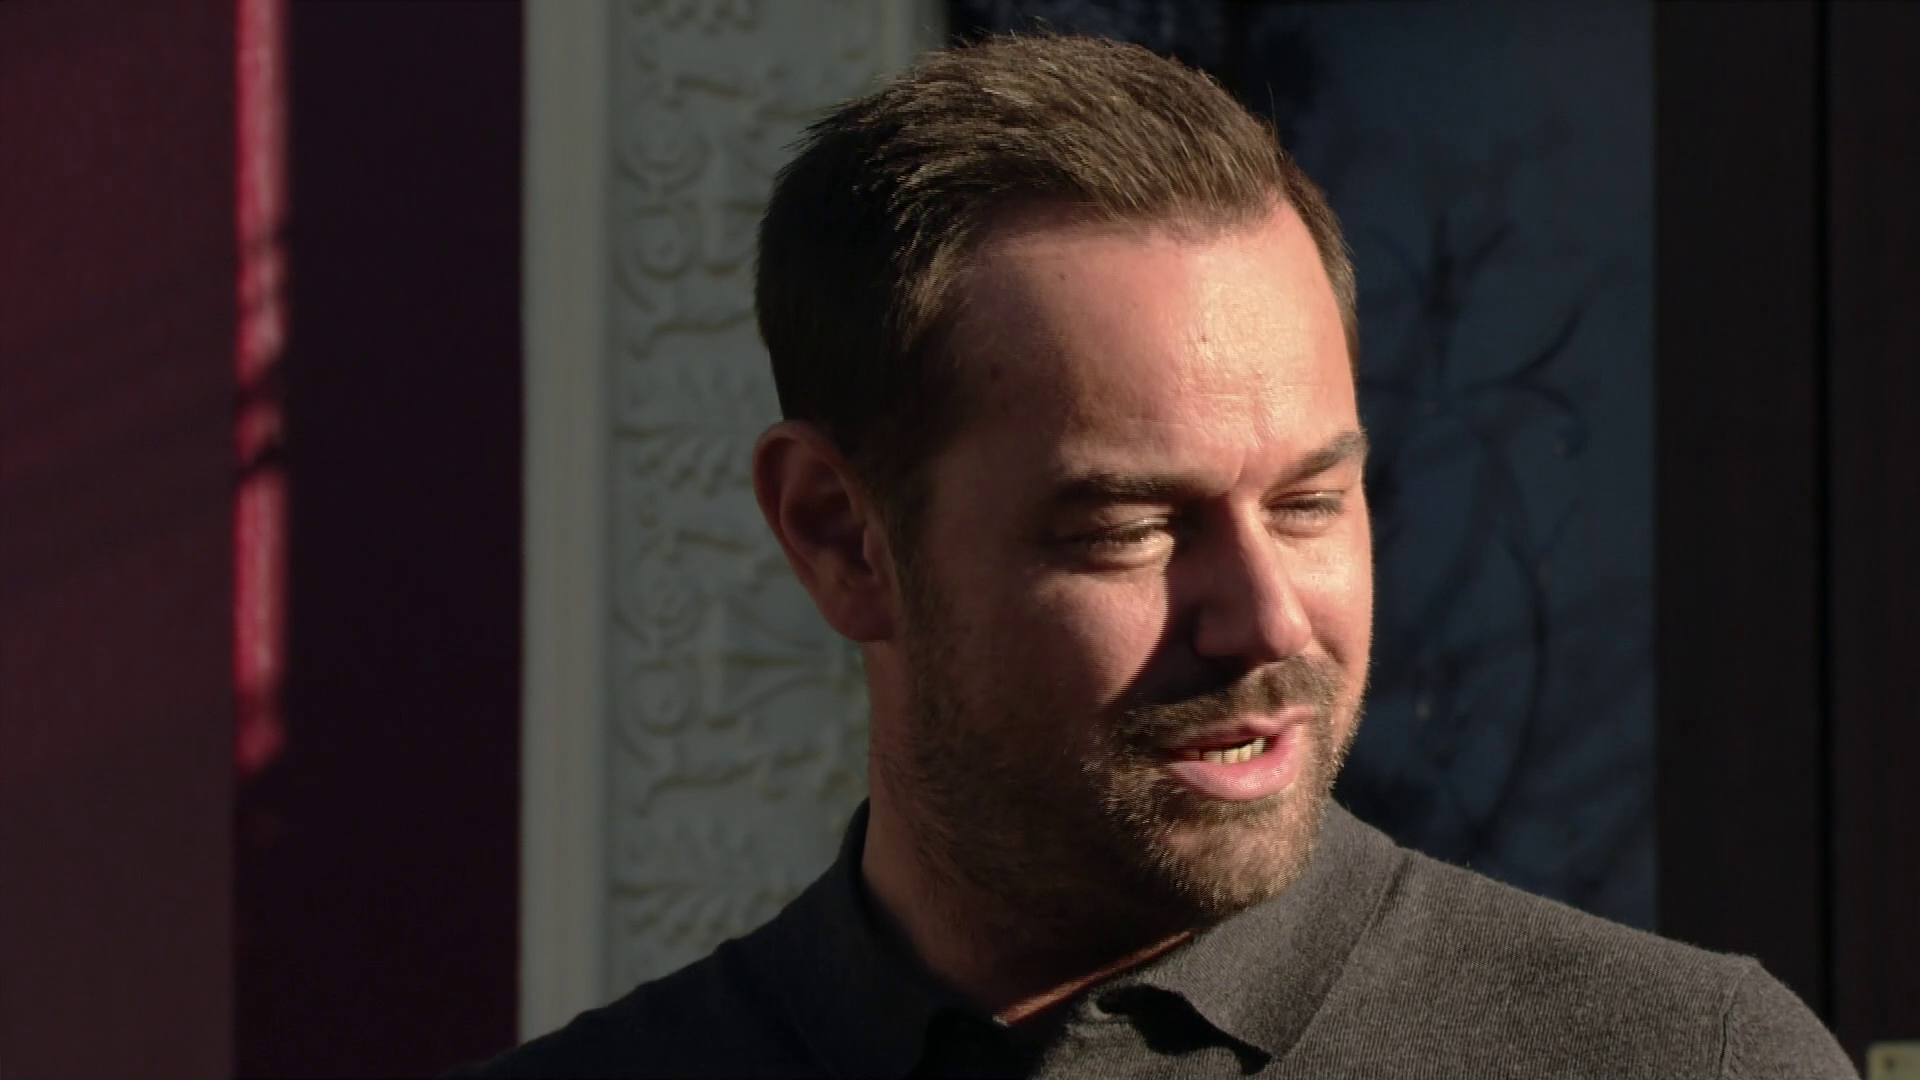 EastEnders' Mick Carter returns from prison with a 'smashing tan' after three months inside